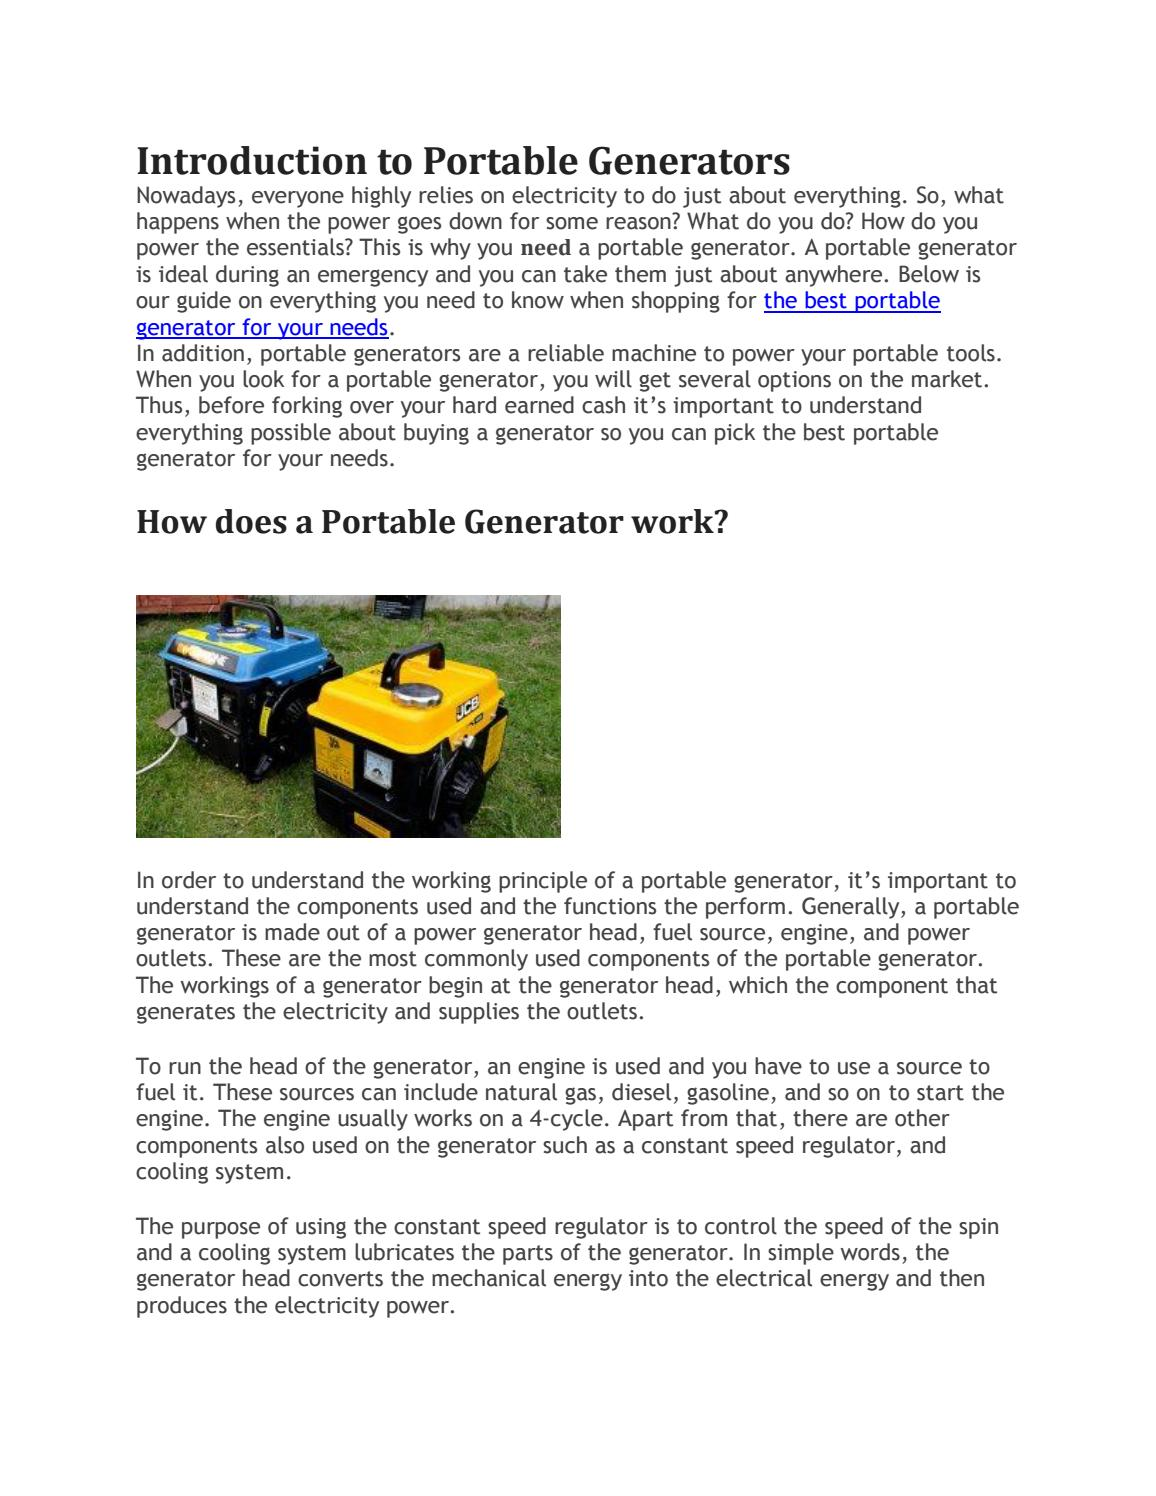 Buyers Guide How To Choose The Best Portable Generator By Handy Does An Electric Work Generators Issuu